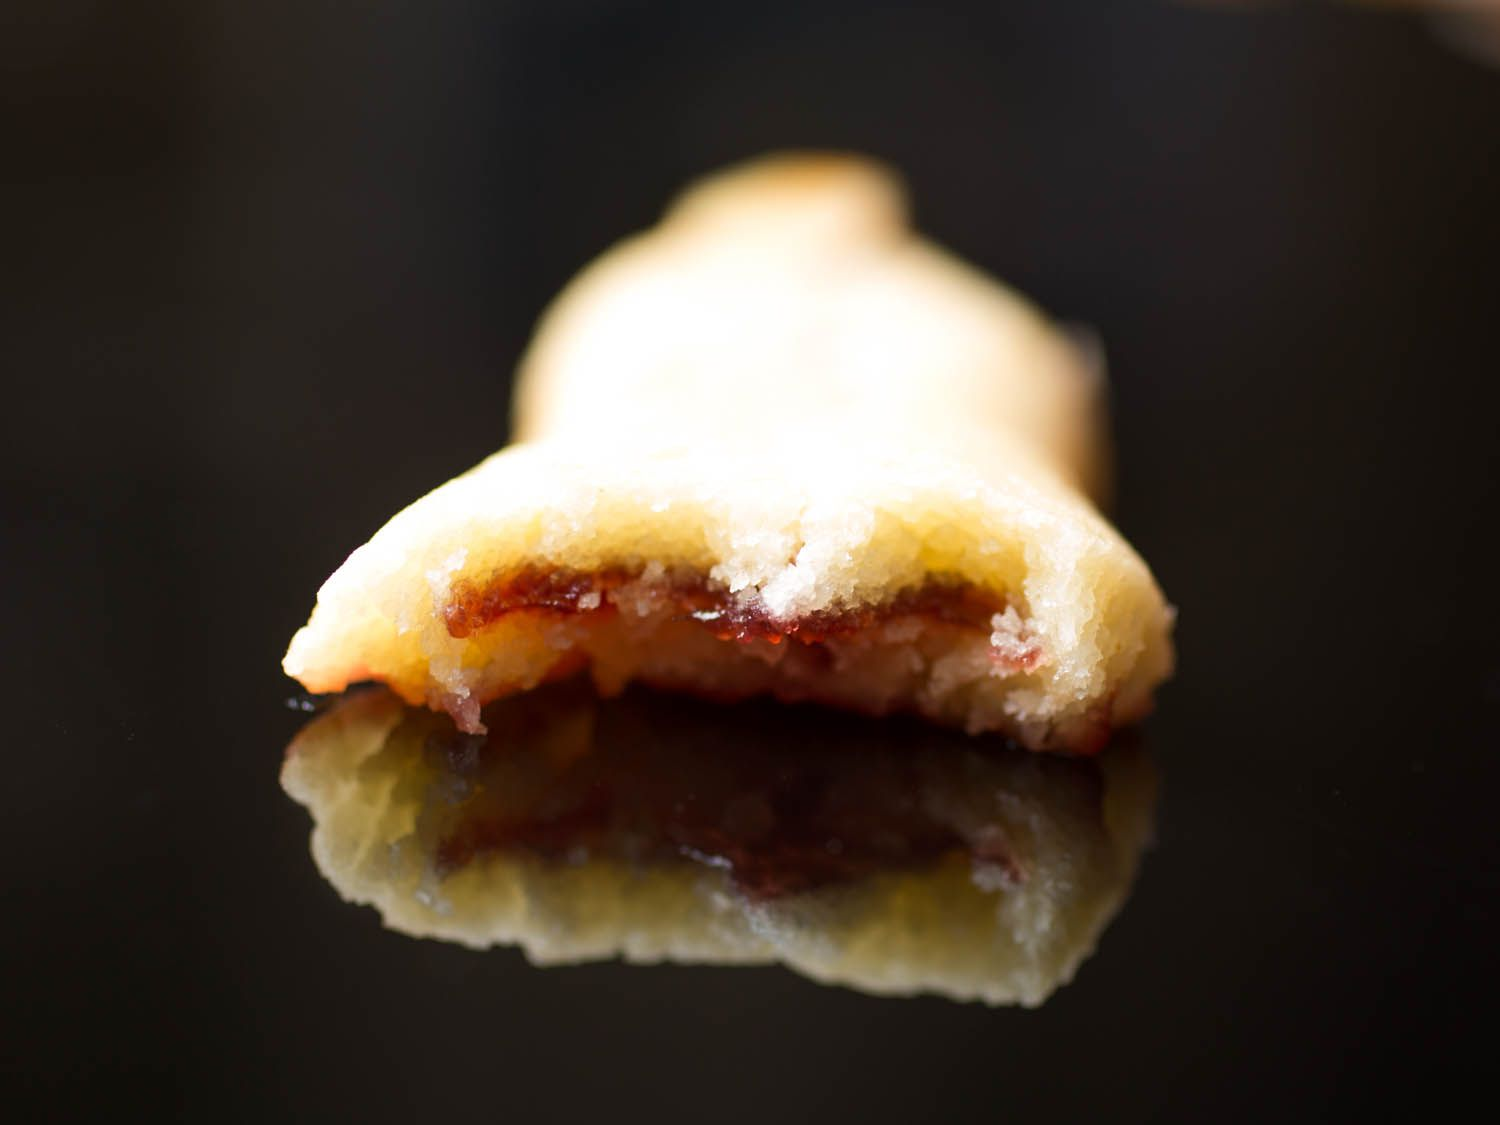 20141022-witch-finger-cookies-vicky-wasik-15.jpg